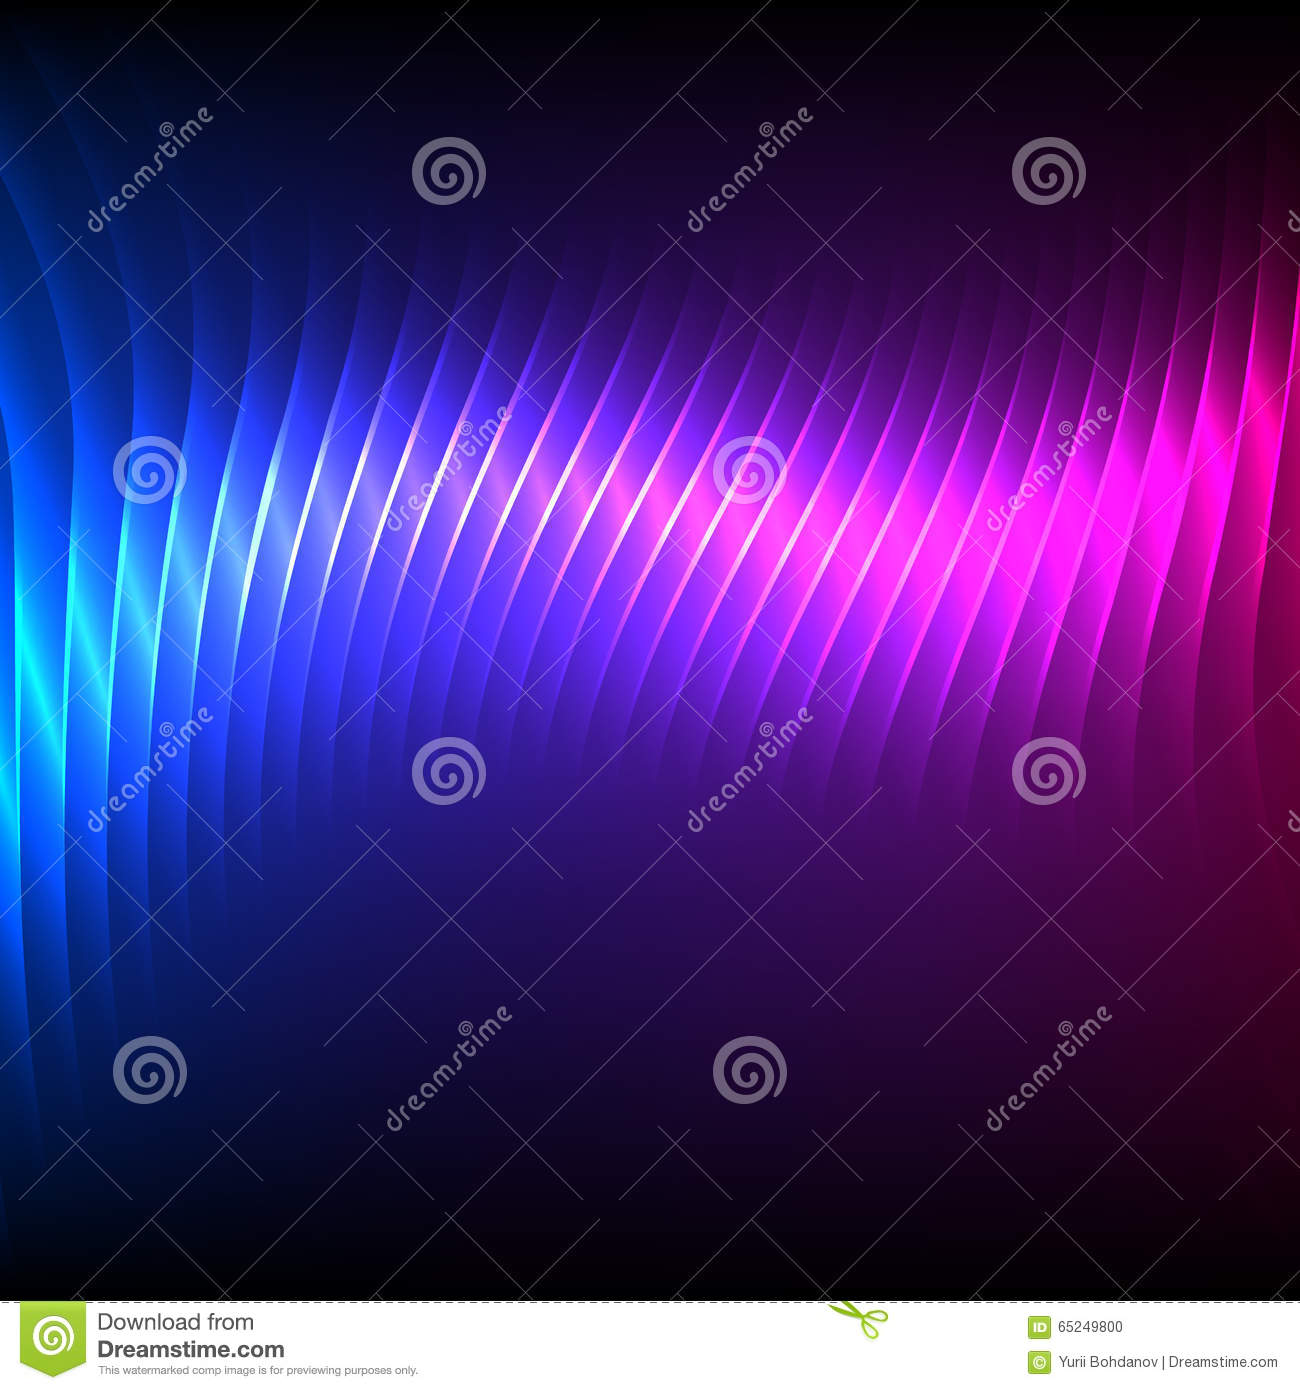 Party-flyer-background-bright-blue-purple Stock Vector - Image ...